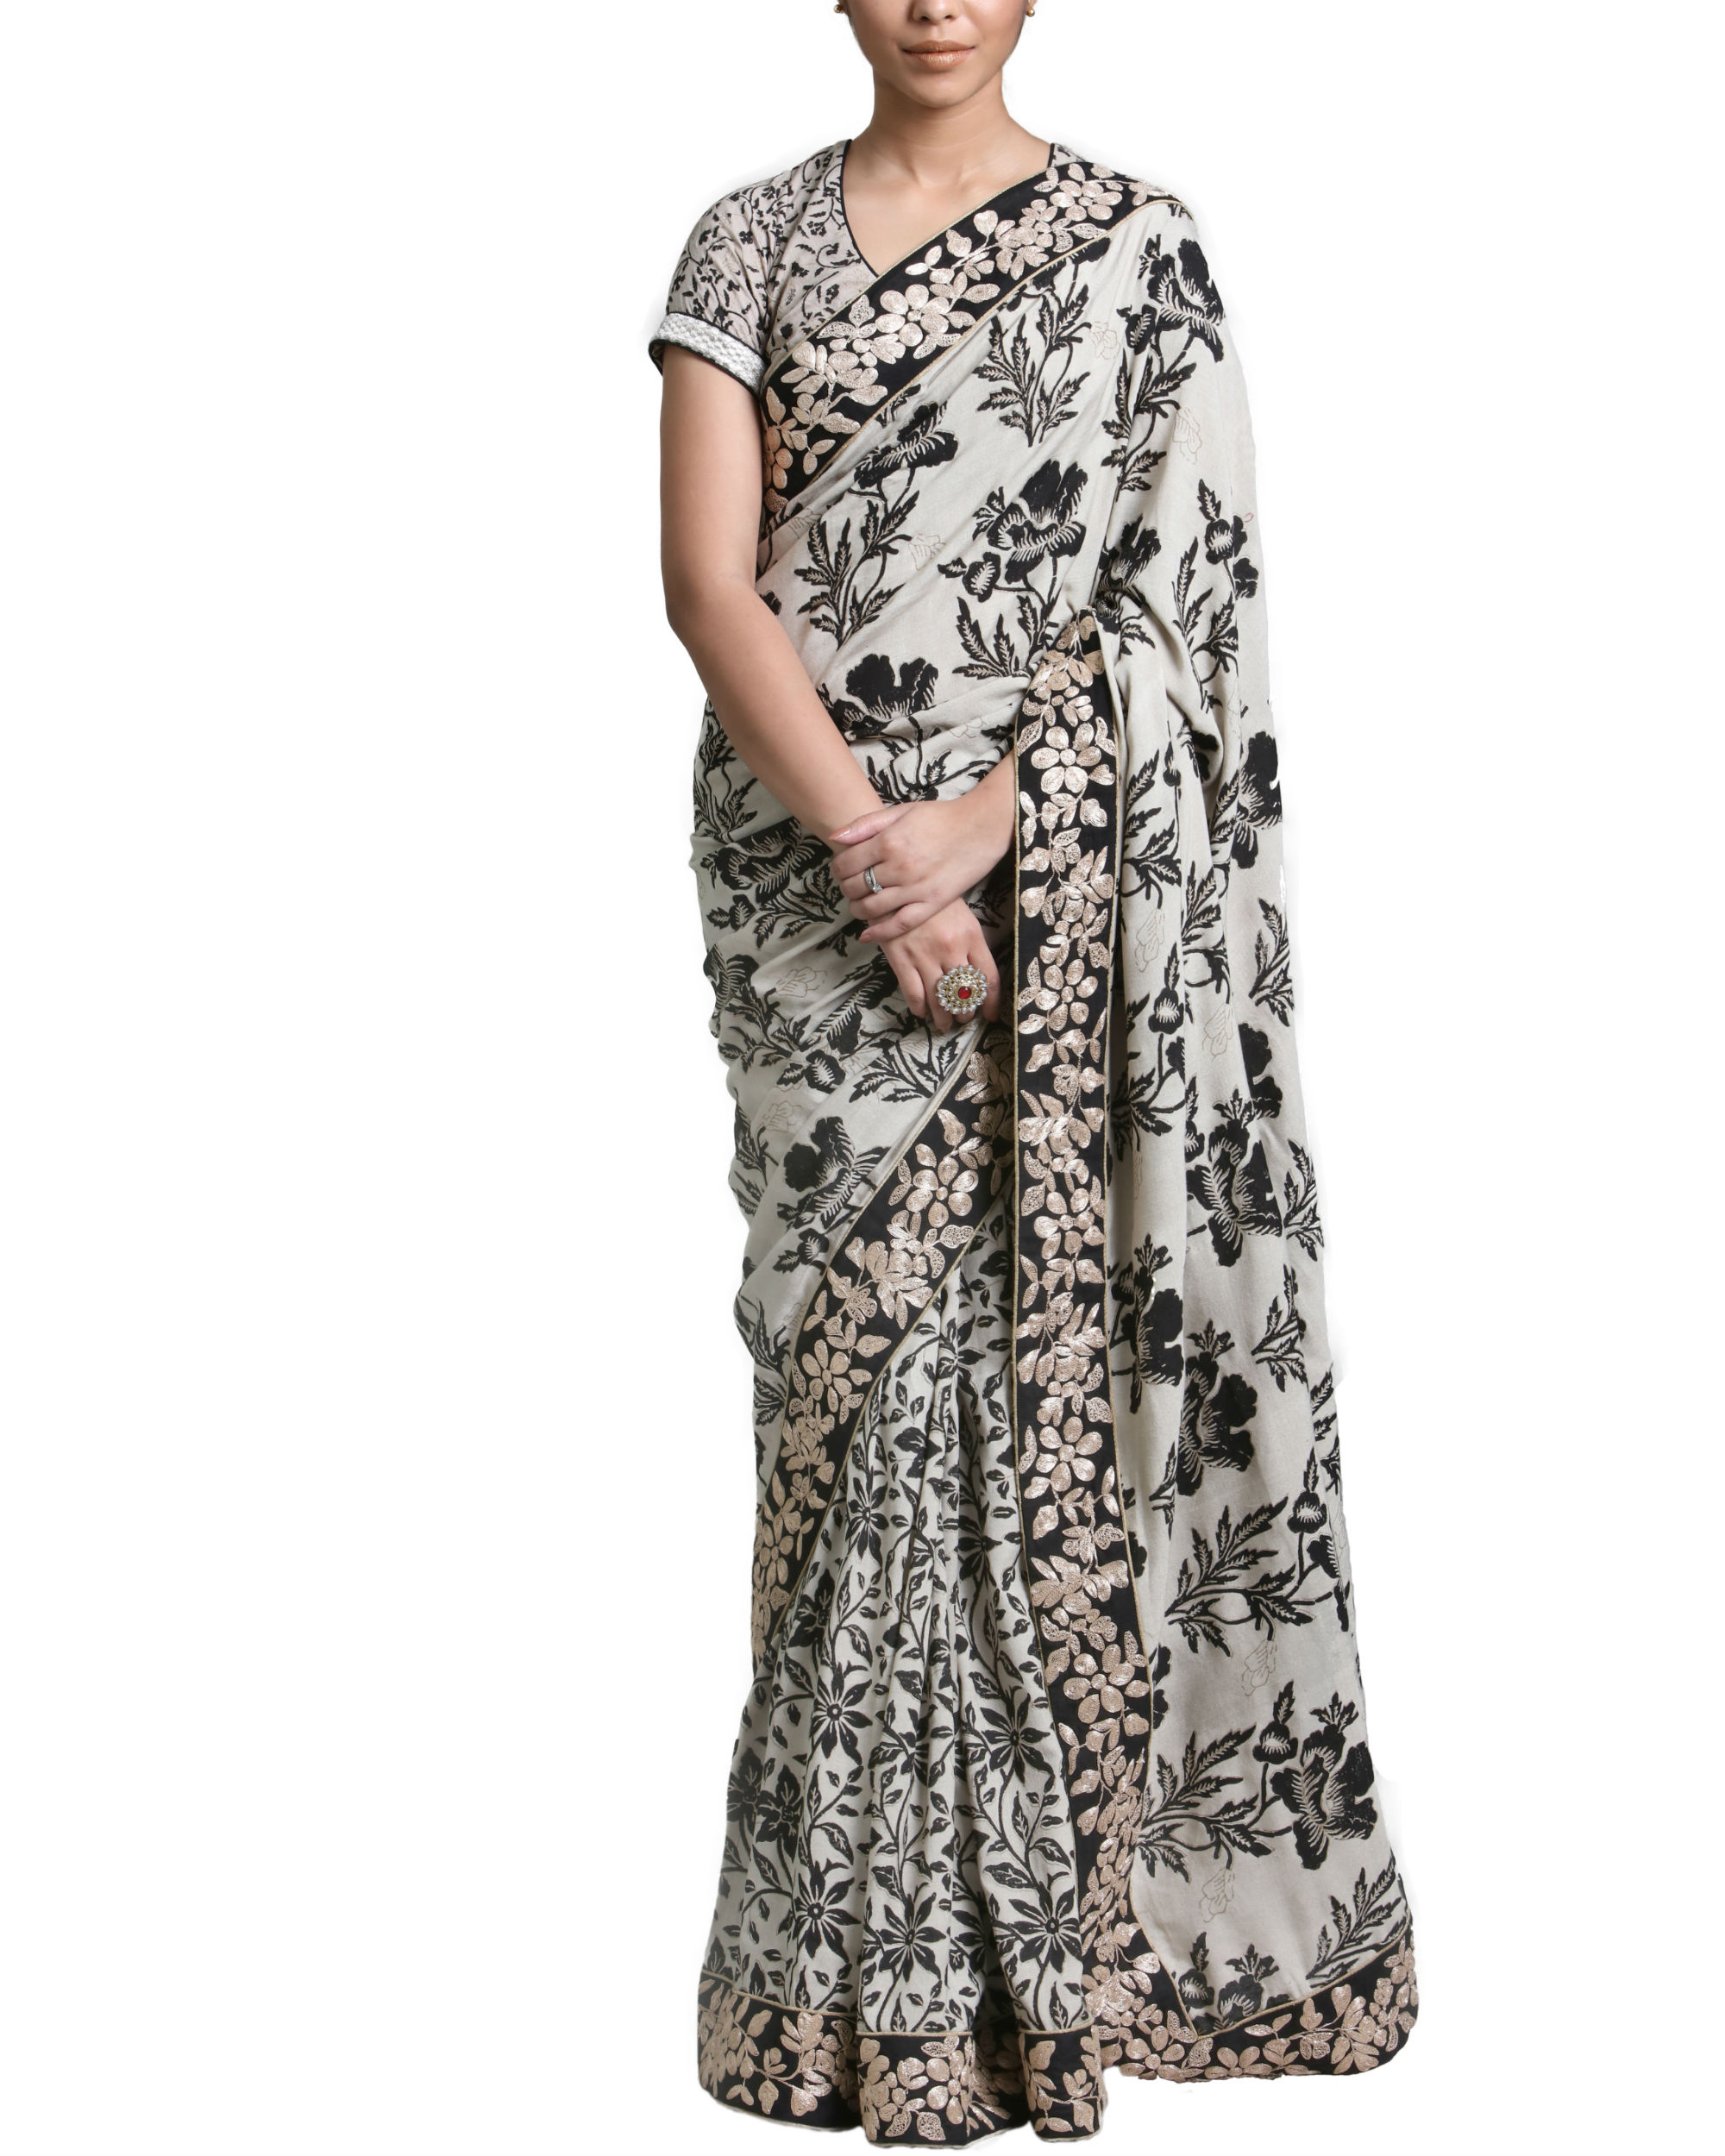 Beige and black sari